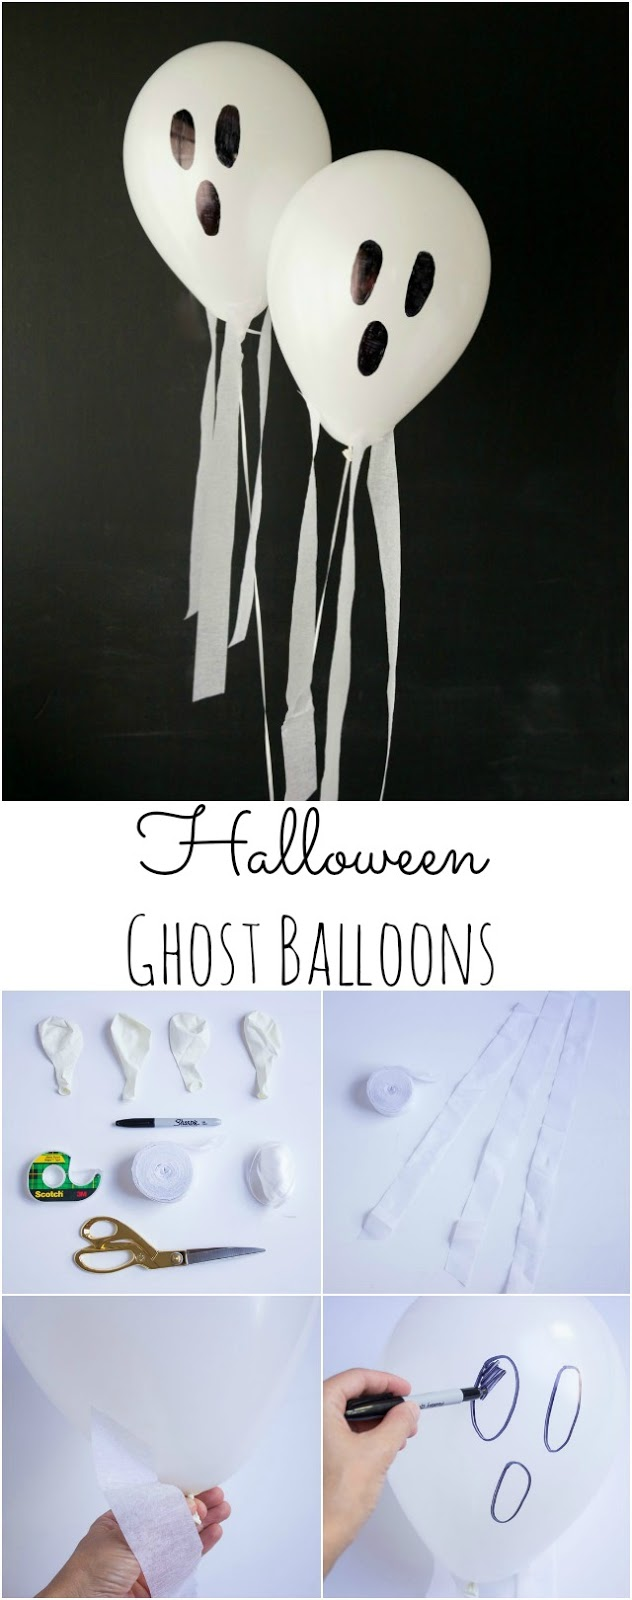 These DIY Halloween ghost balloons look like they are flying through the air! || Design Improvised blog